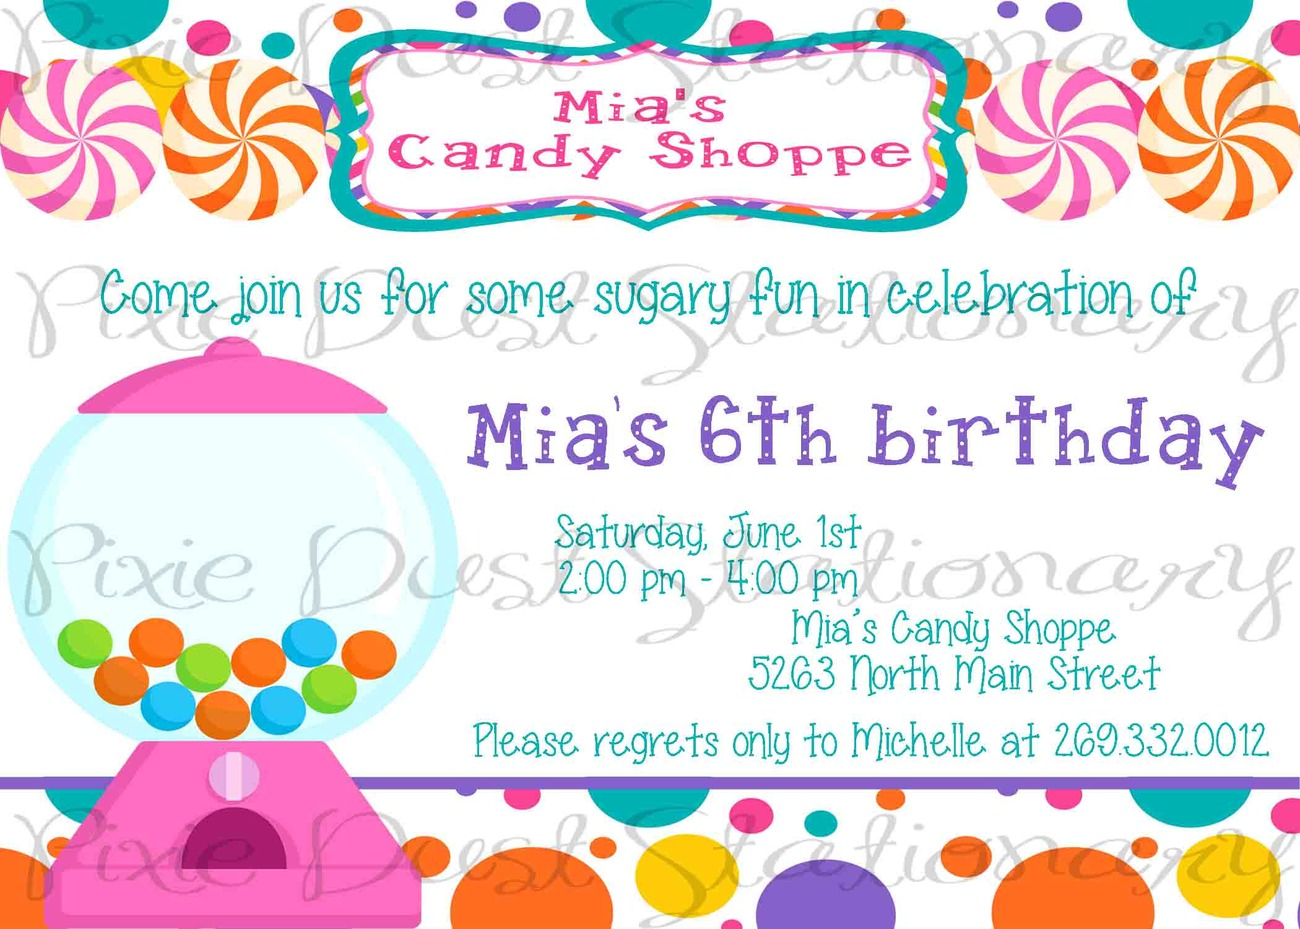 Candy Shoppe Theme Party Invitations